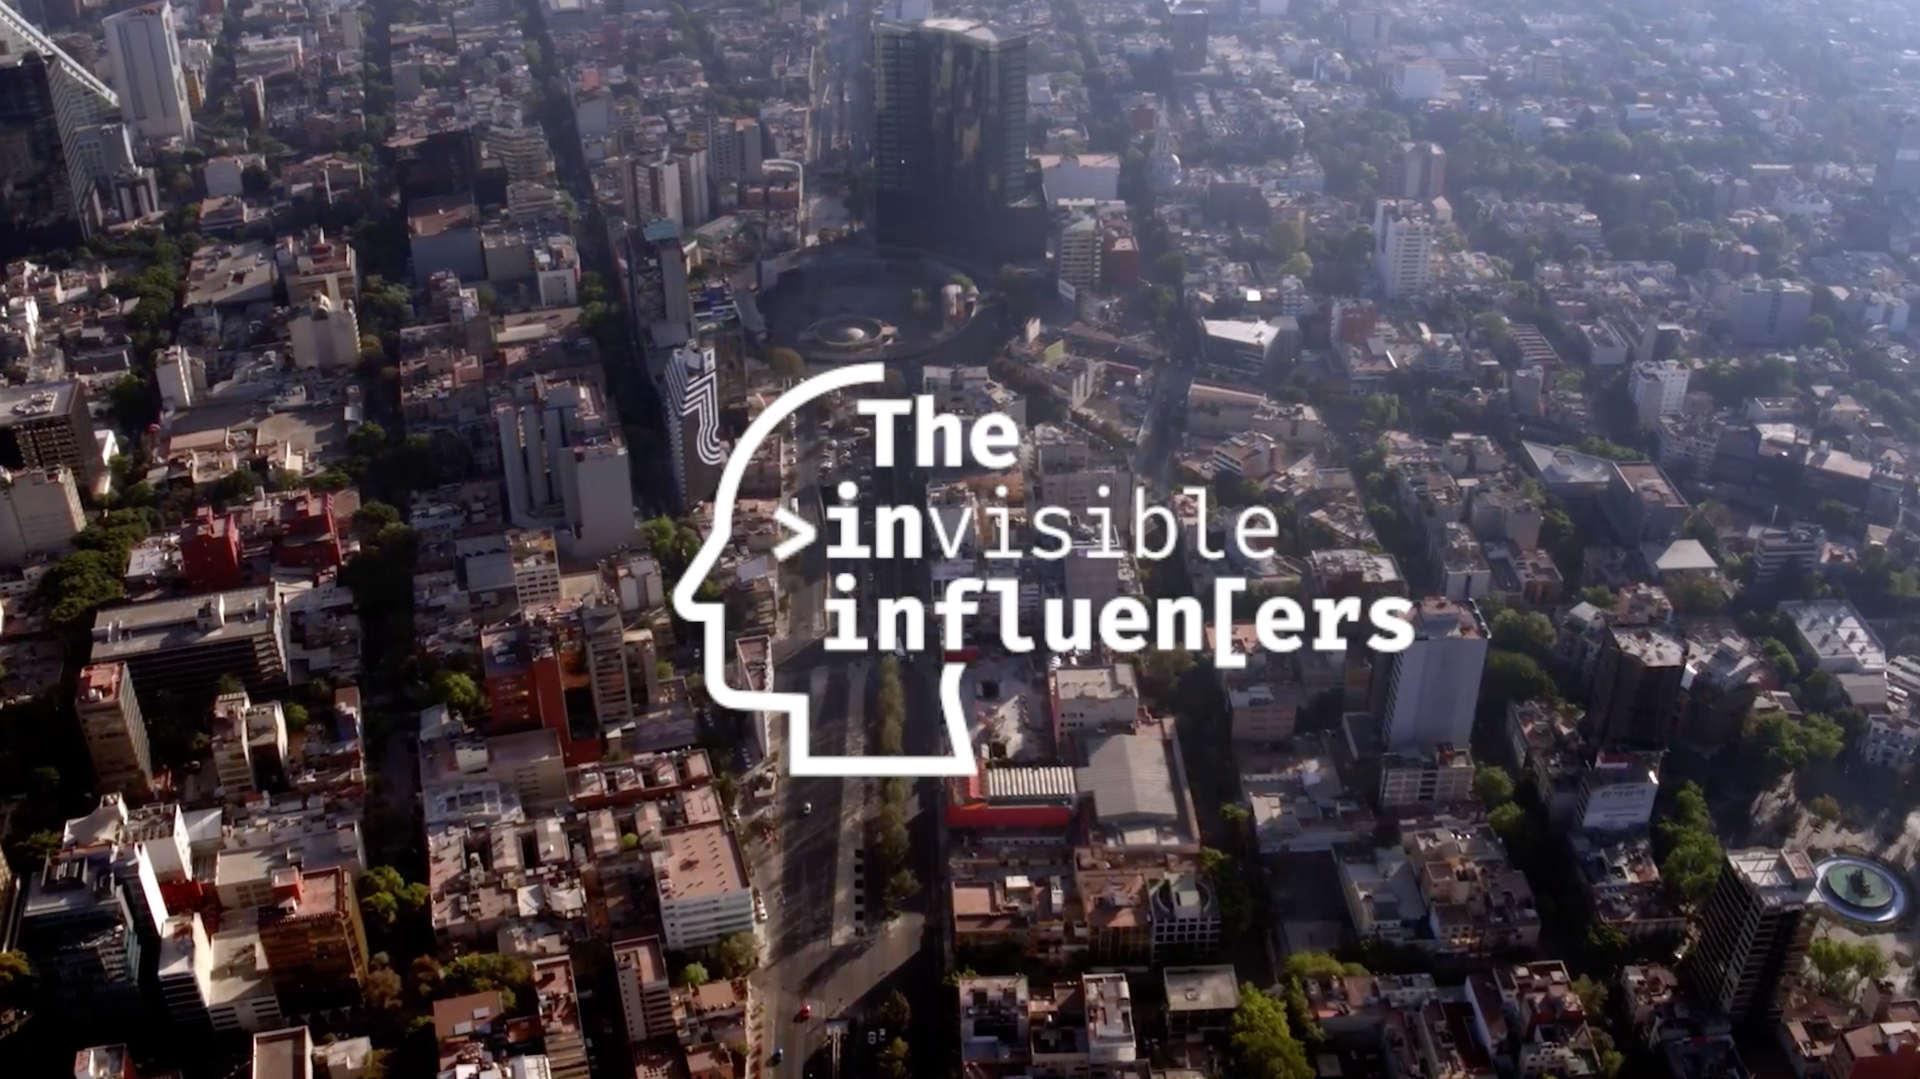 Invisible influencers